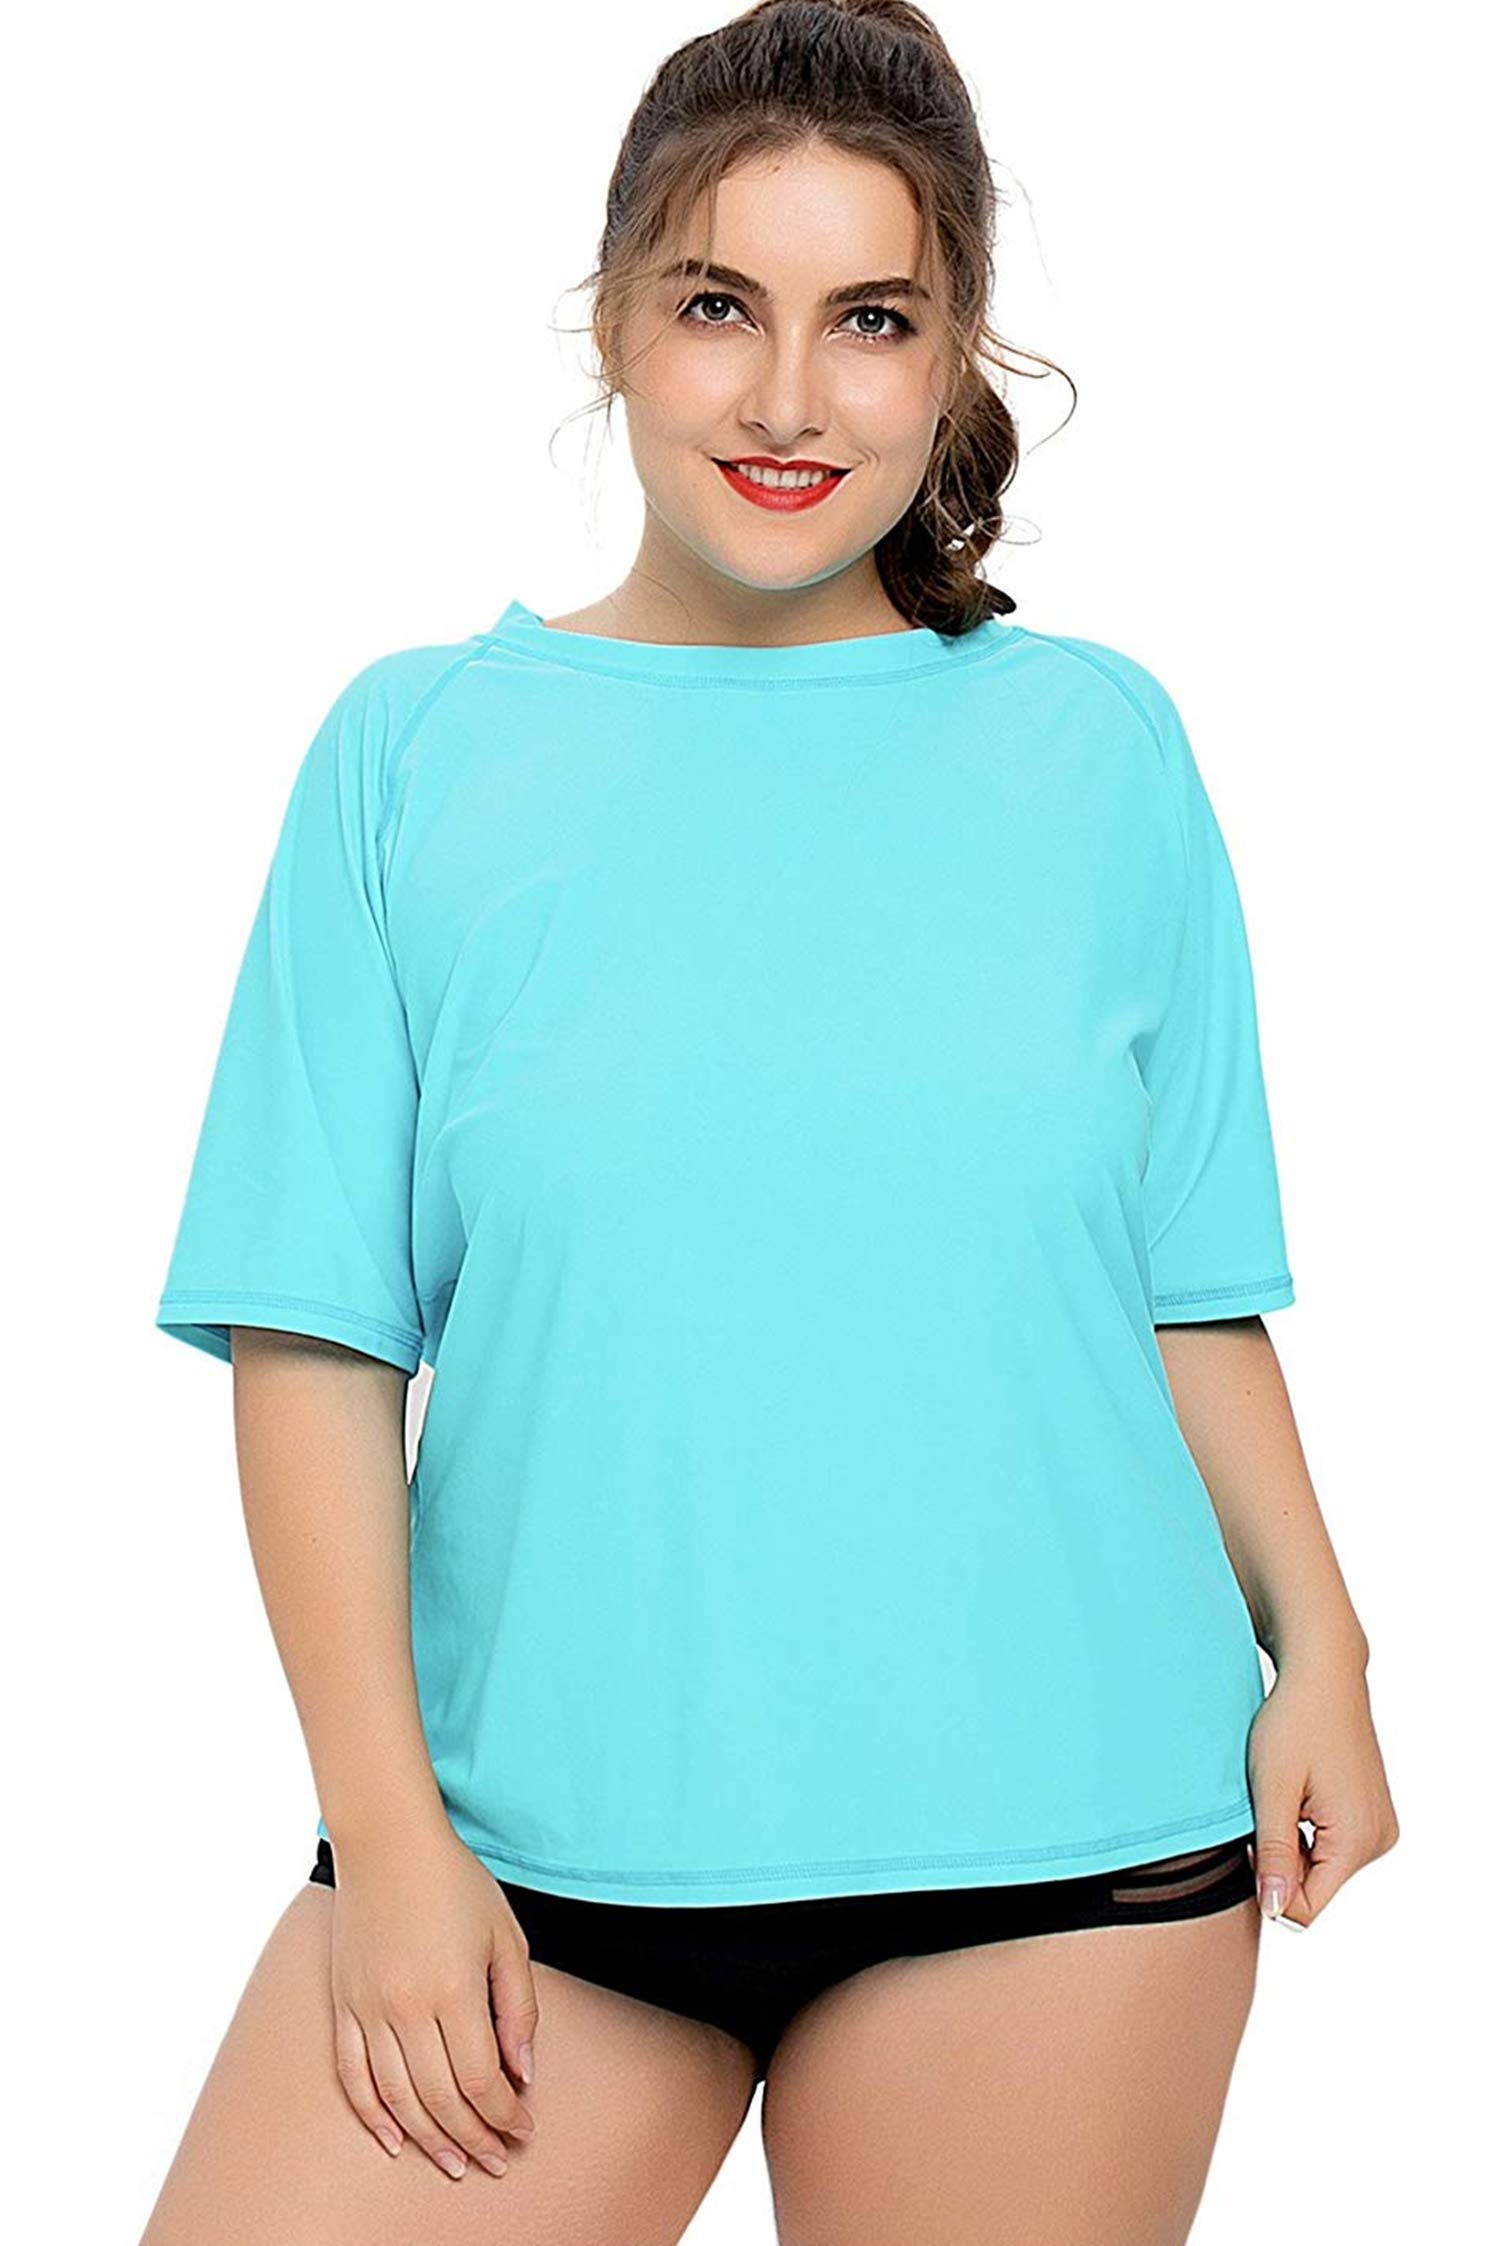 ATTRACO Womens Plus Size Rash Guard Shirts Short Sleeve Solid Rashguards 1X Aqua by ATTRACO